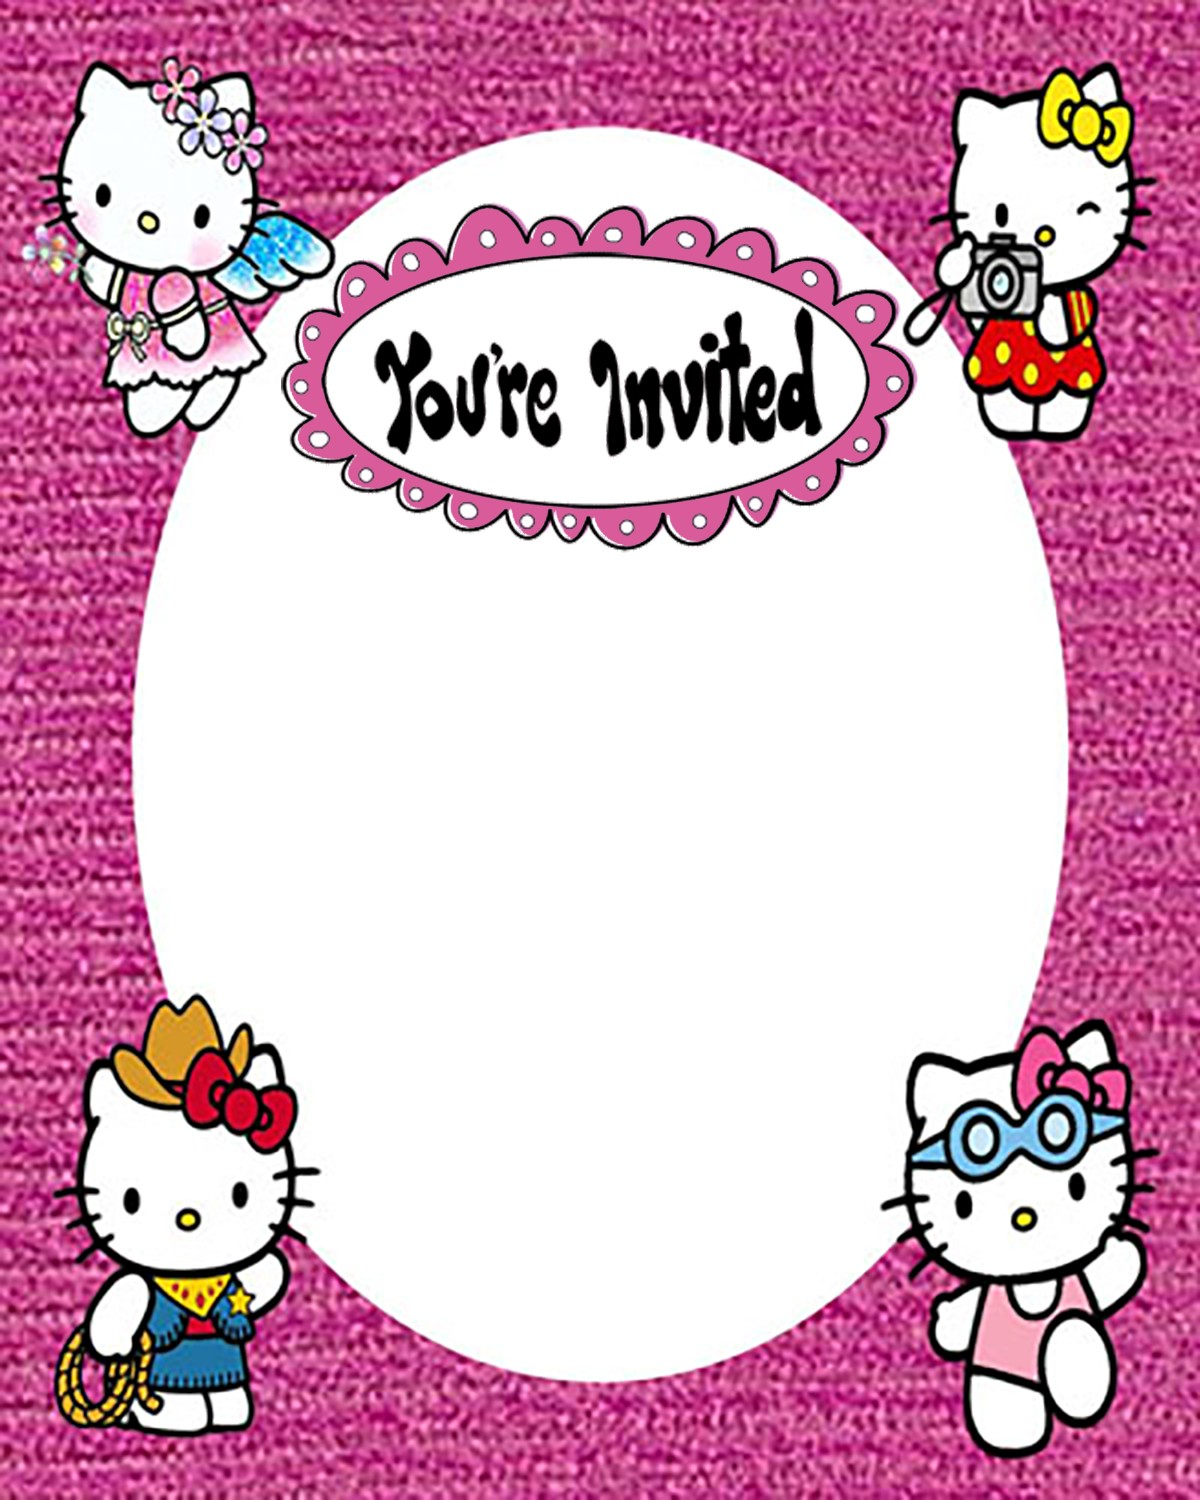 Youre invited to Hello Kitty Birthday Party